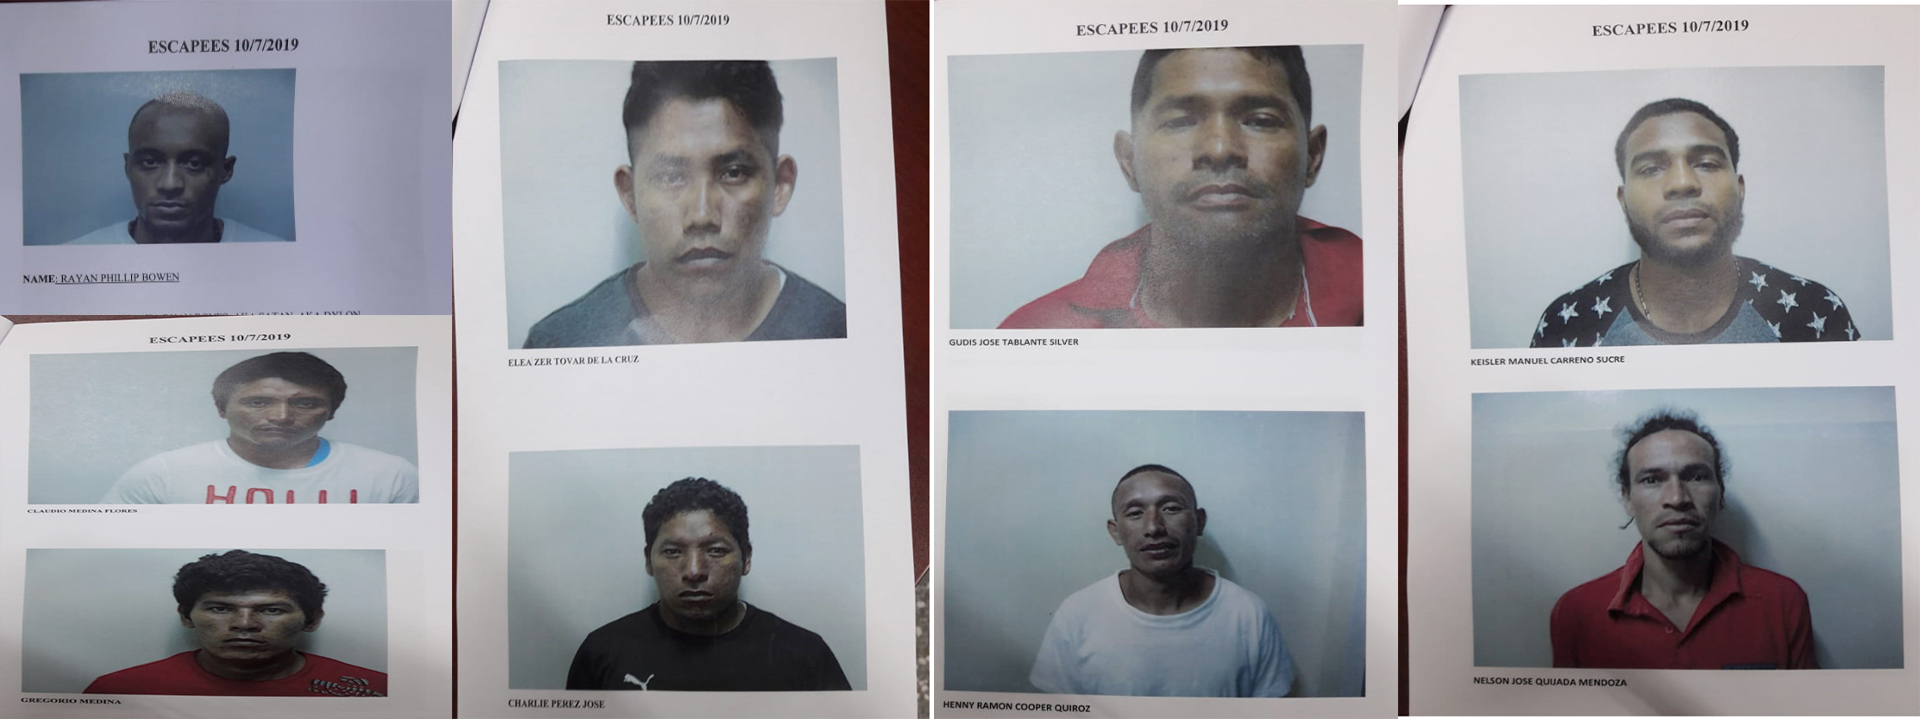 2 Venezuelan Escapees Surrender